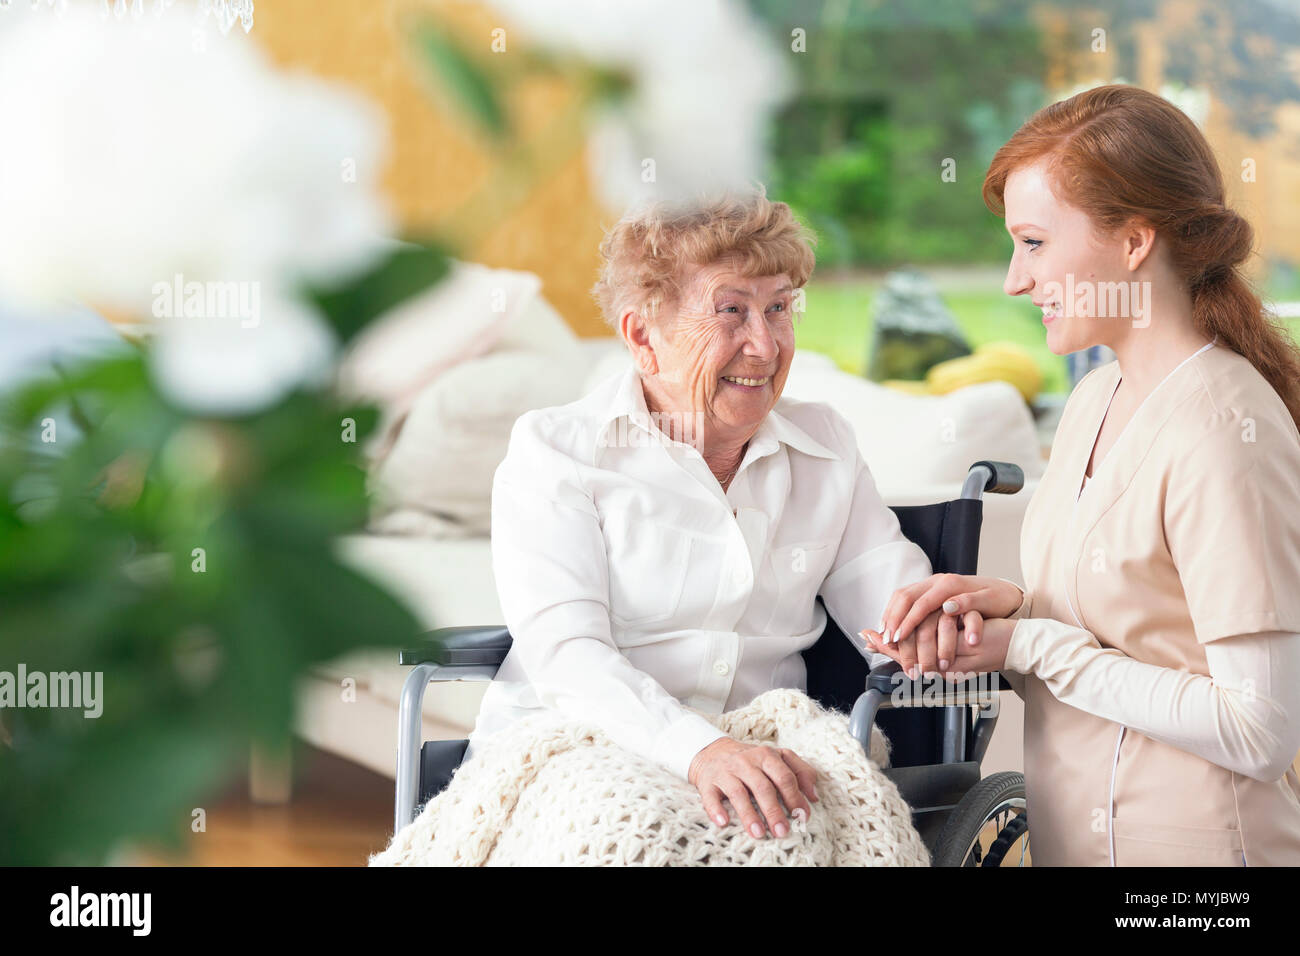 Smiling senior woman in a wheelchair and friendly nurse - Stock Image